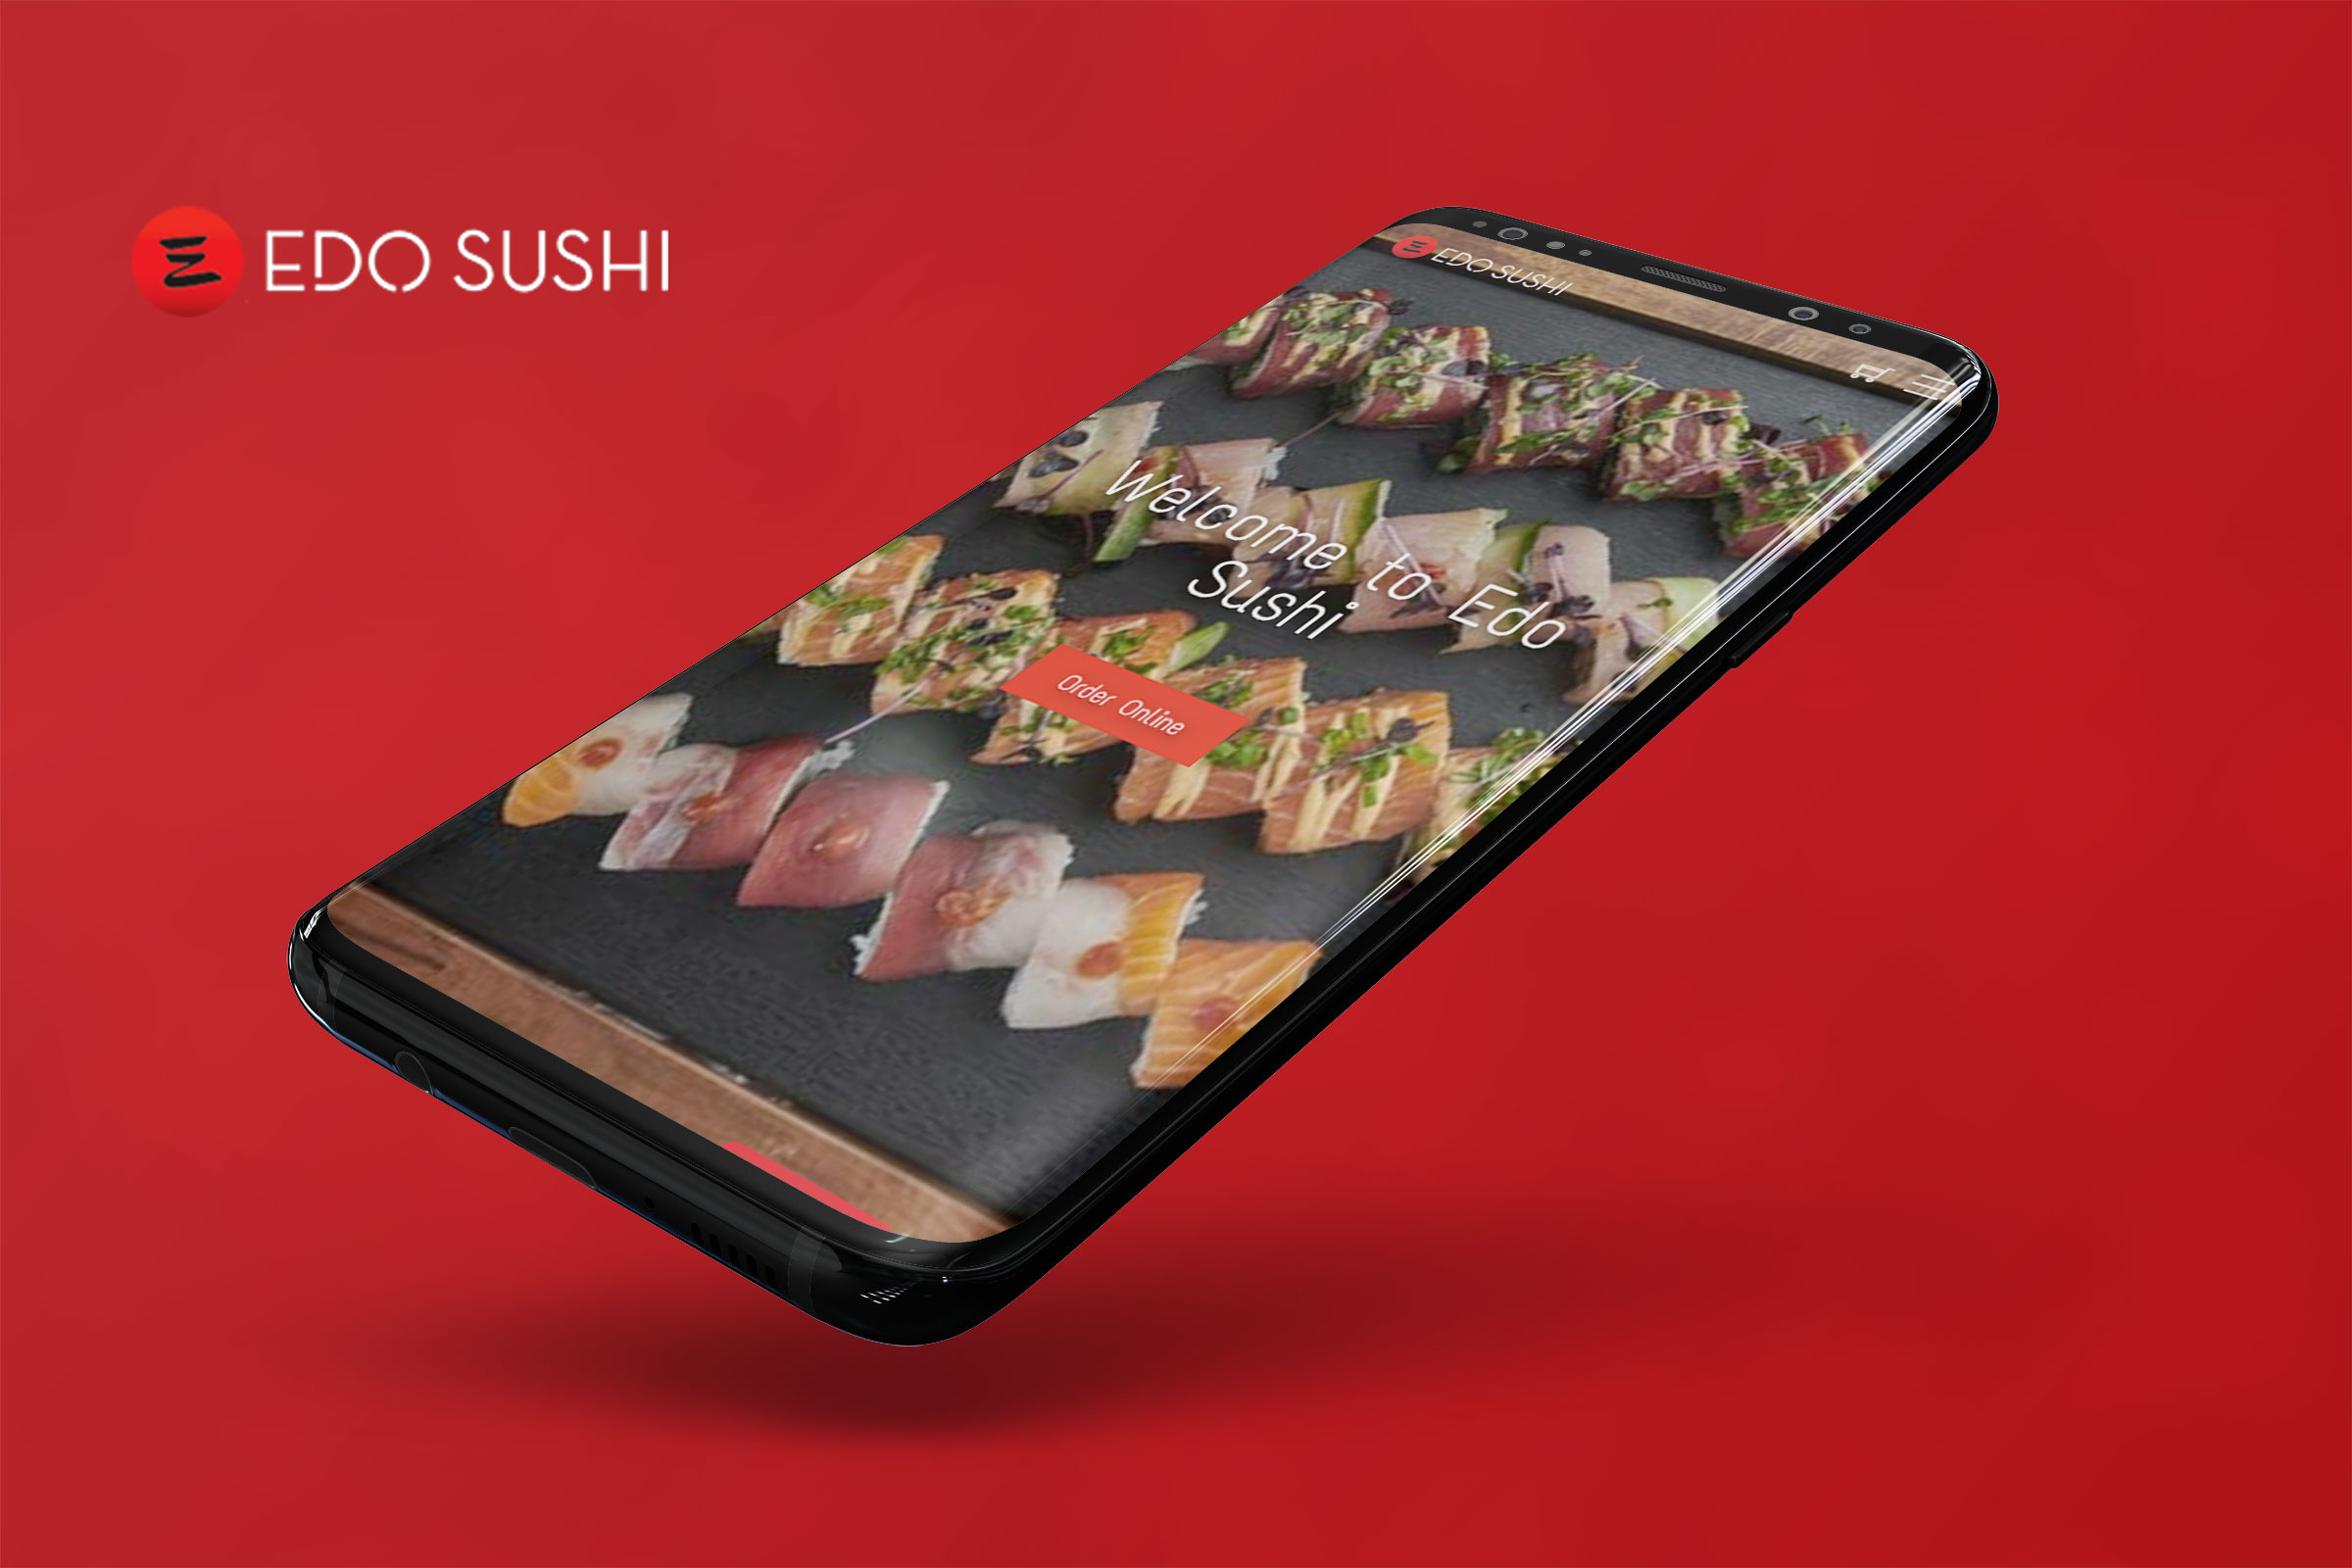 Web design and e-commerce for Edo Sushi - sushi restaurant and delivery from Bucharest